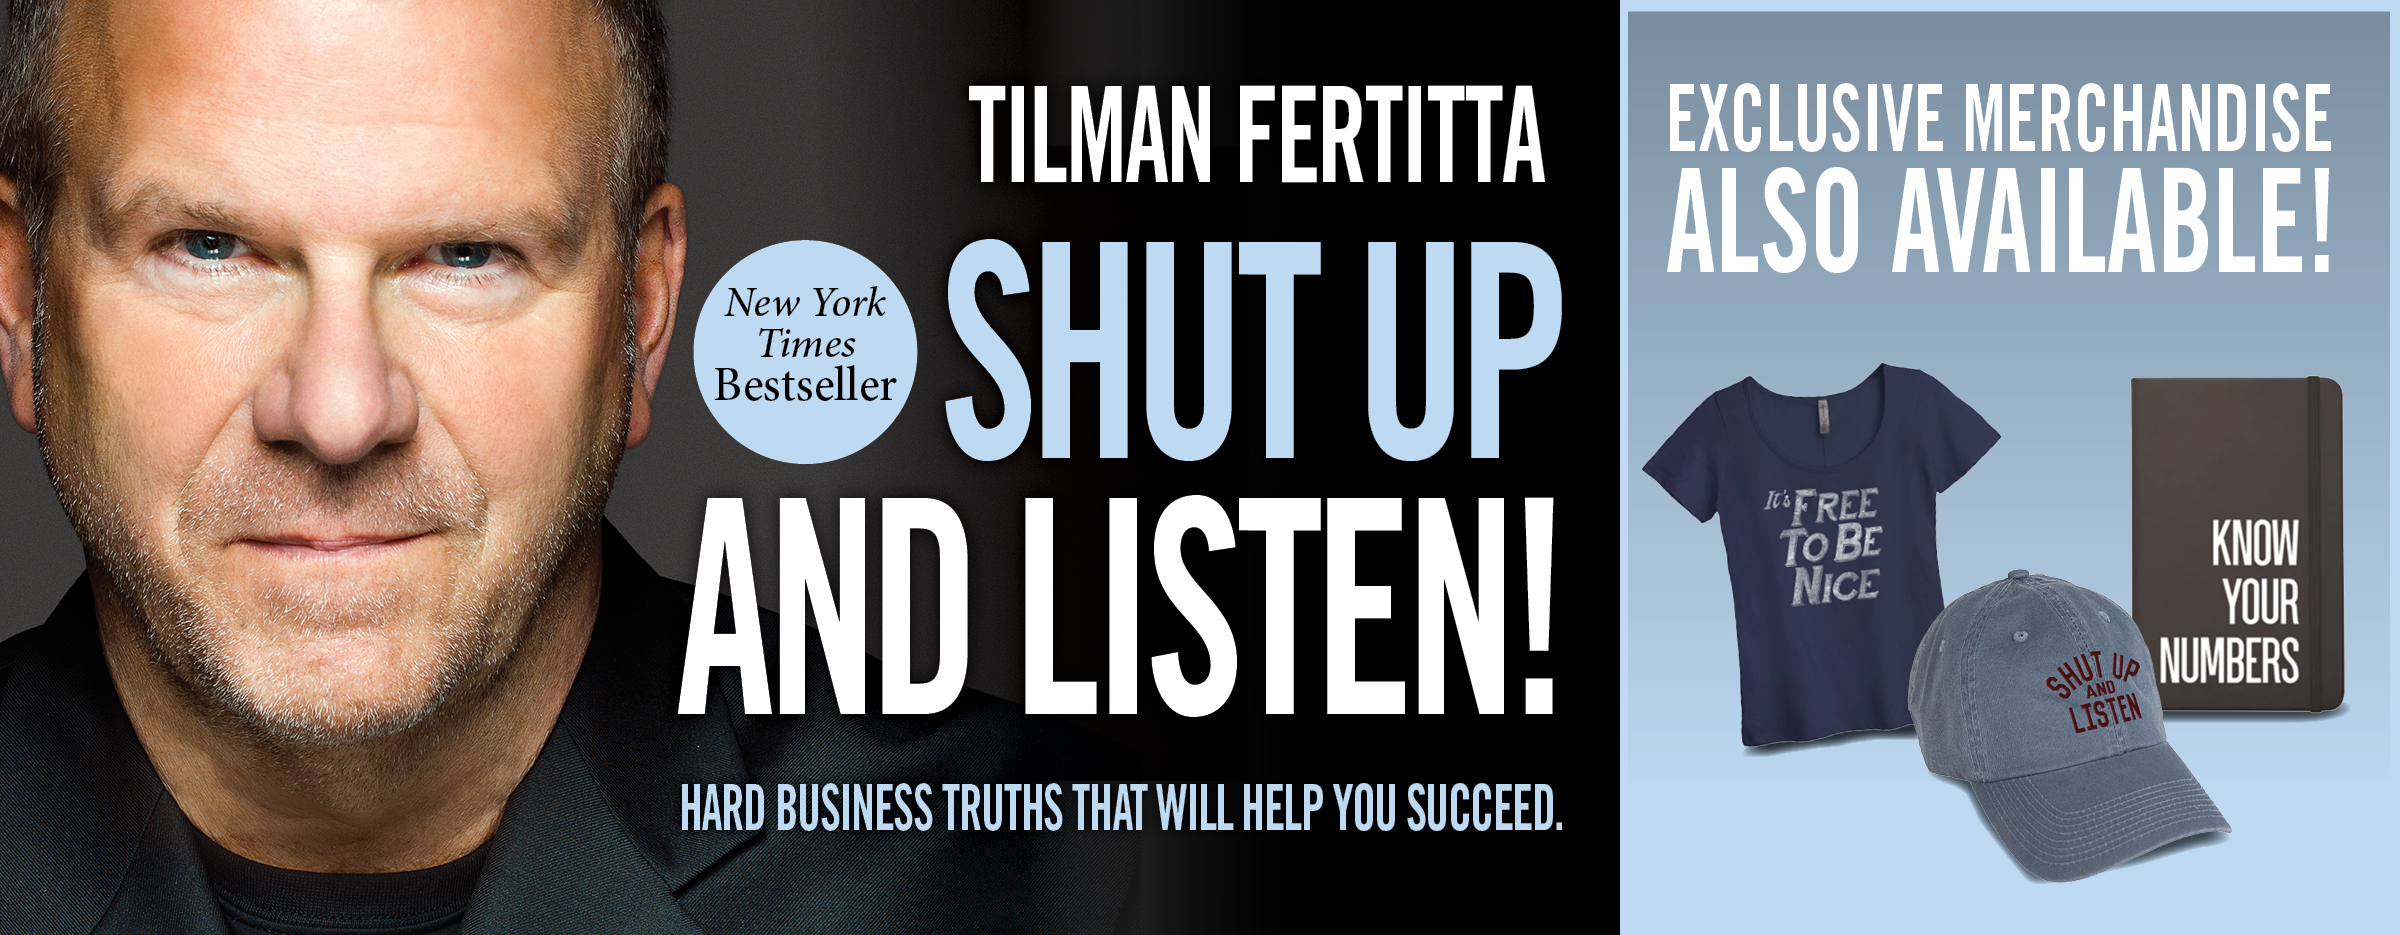 Shut up and Listen by Tilman Fertitta